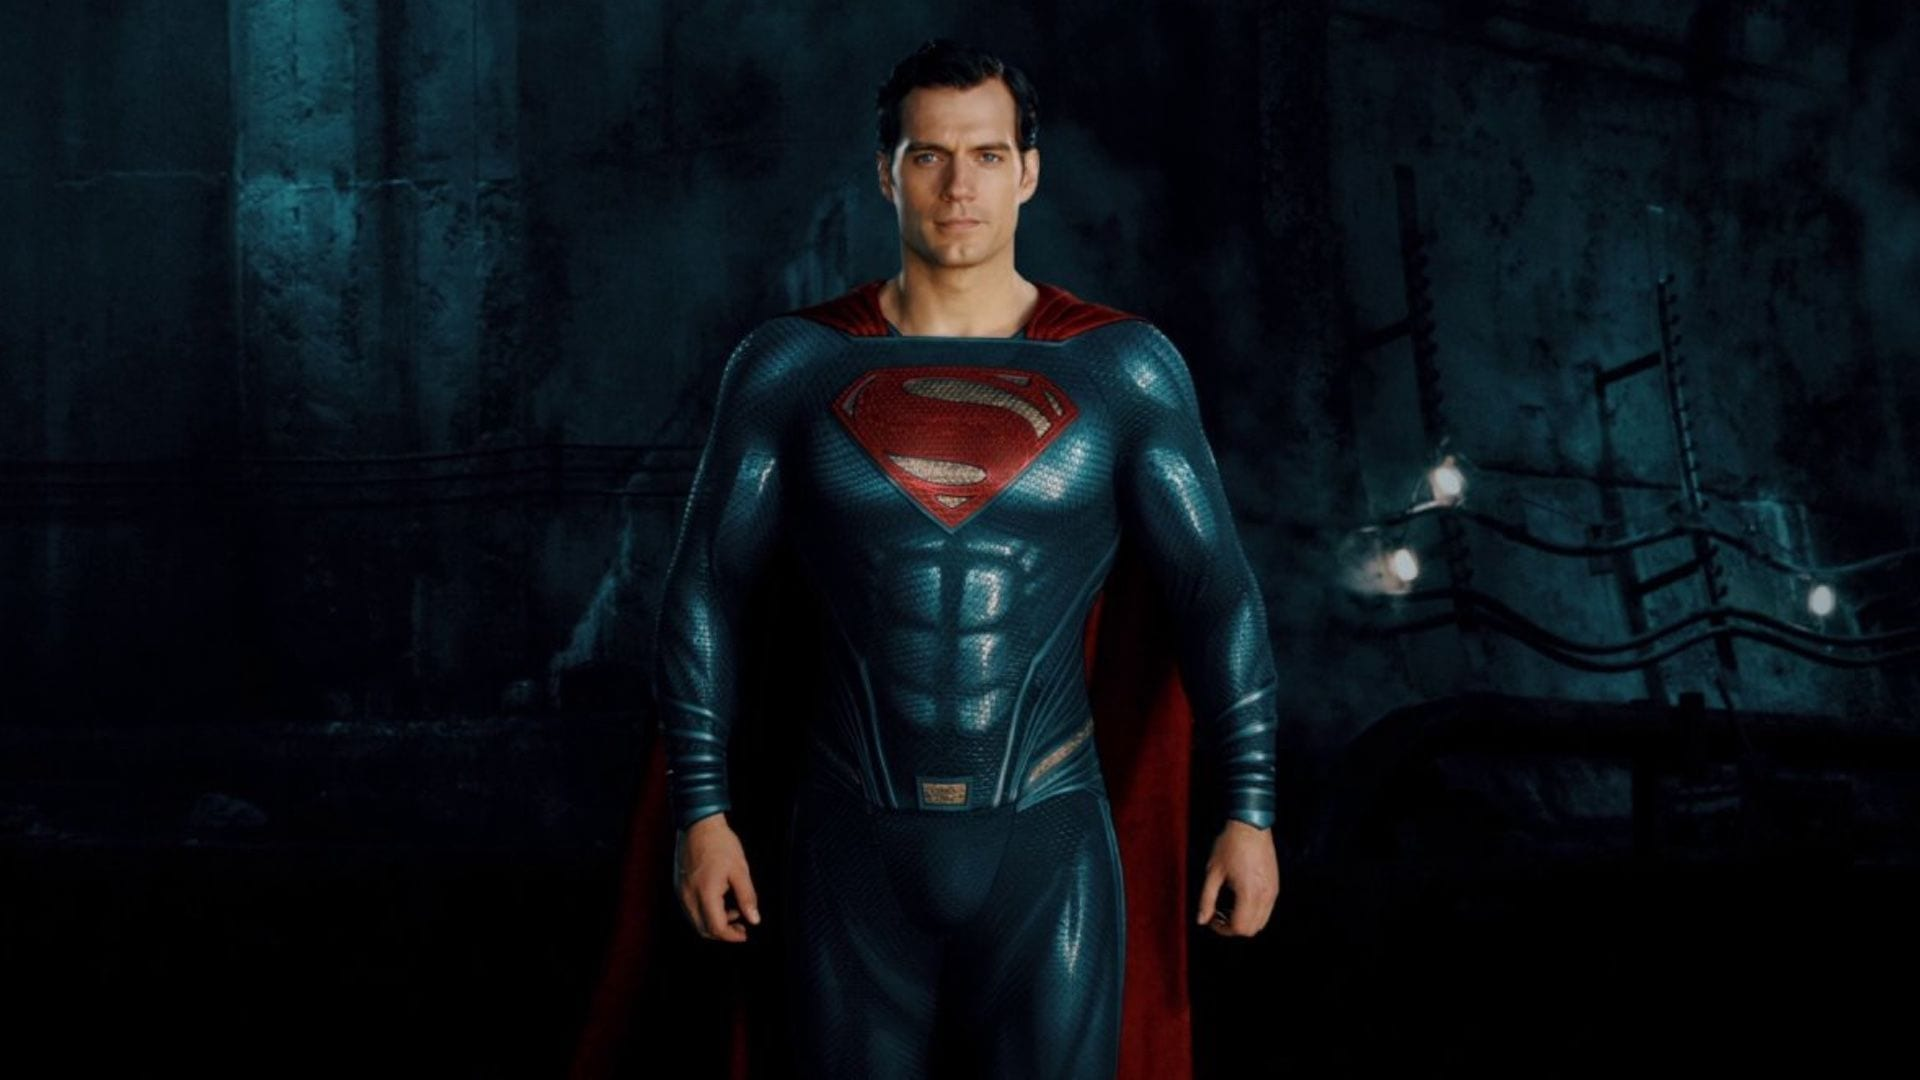 Justice League Snyder Cut: Superman in nero nel nuovo video del film